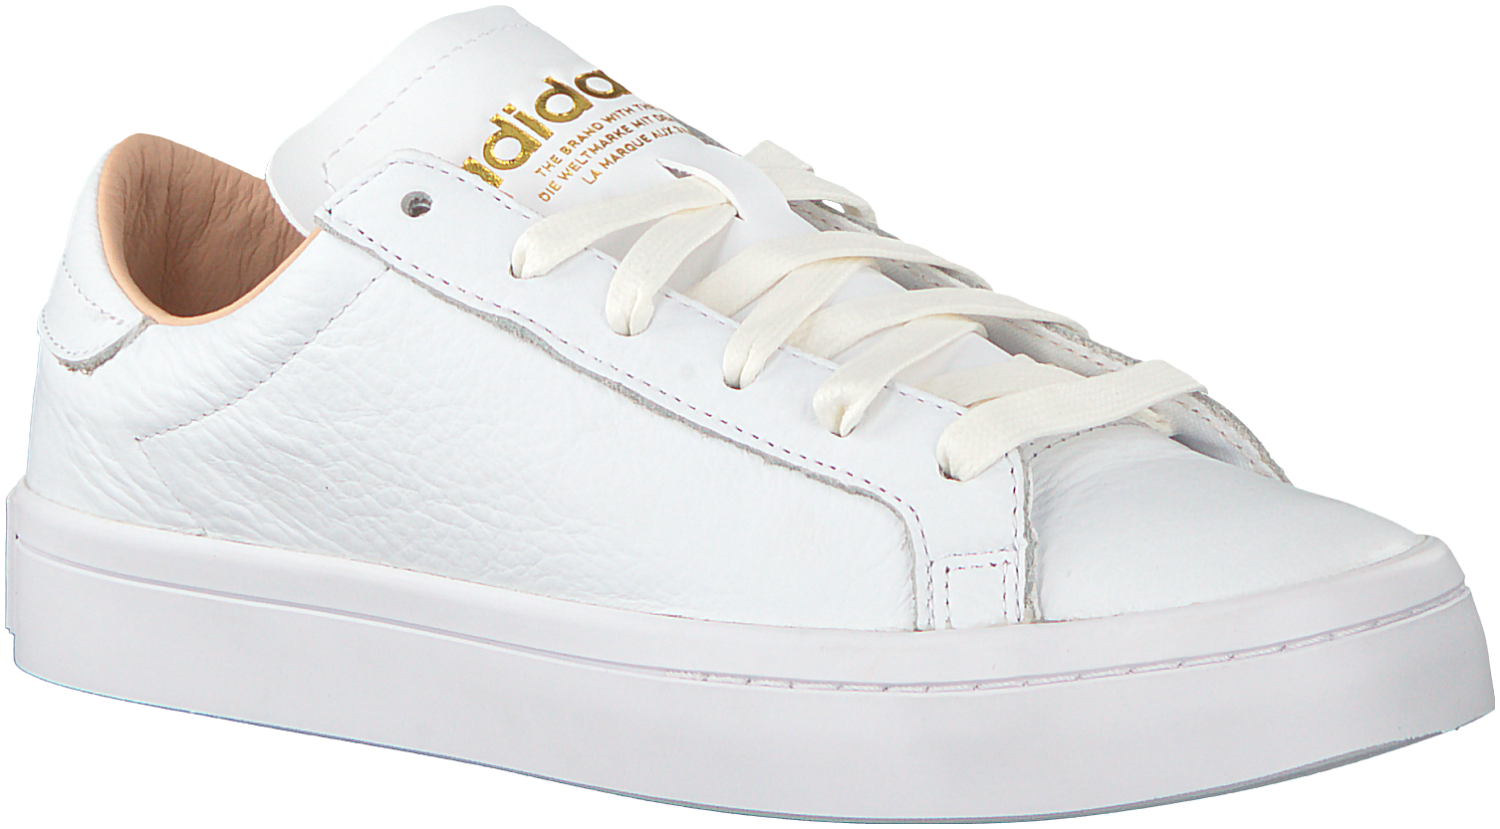 88a08f9233e Witte Adidas Sneakers COURT VANTAGE DAMES #Sneakers | Sneakers in ...